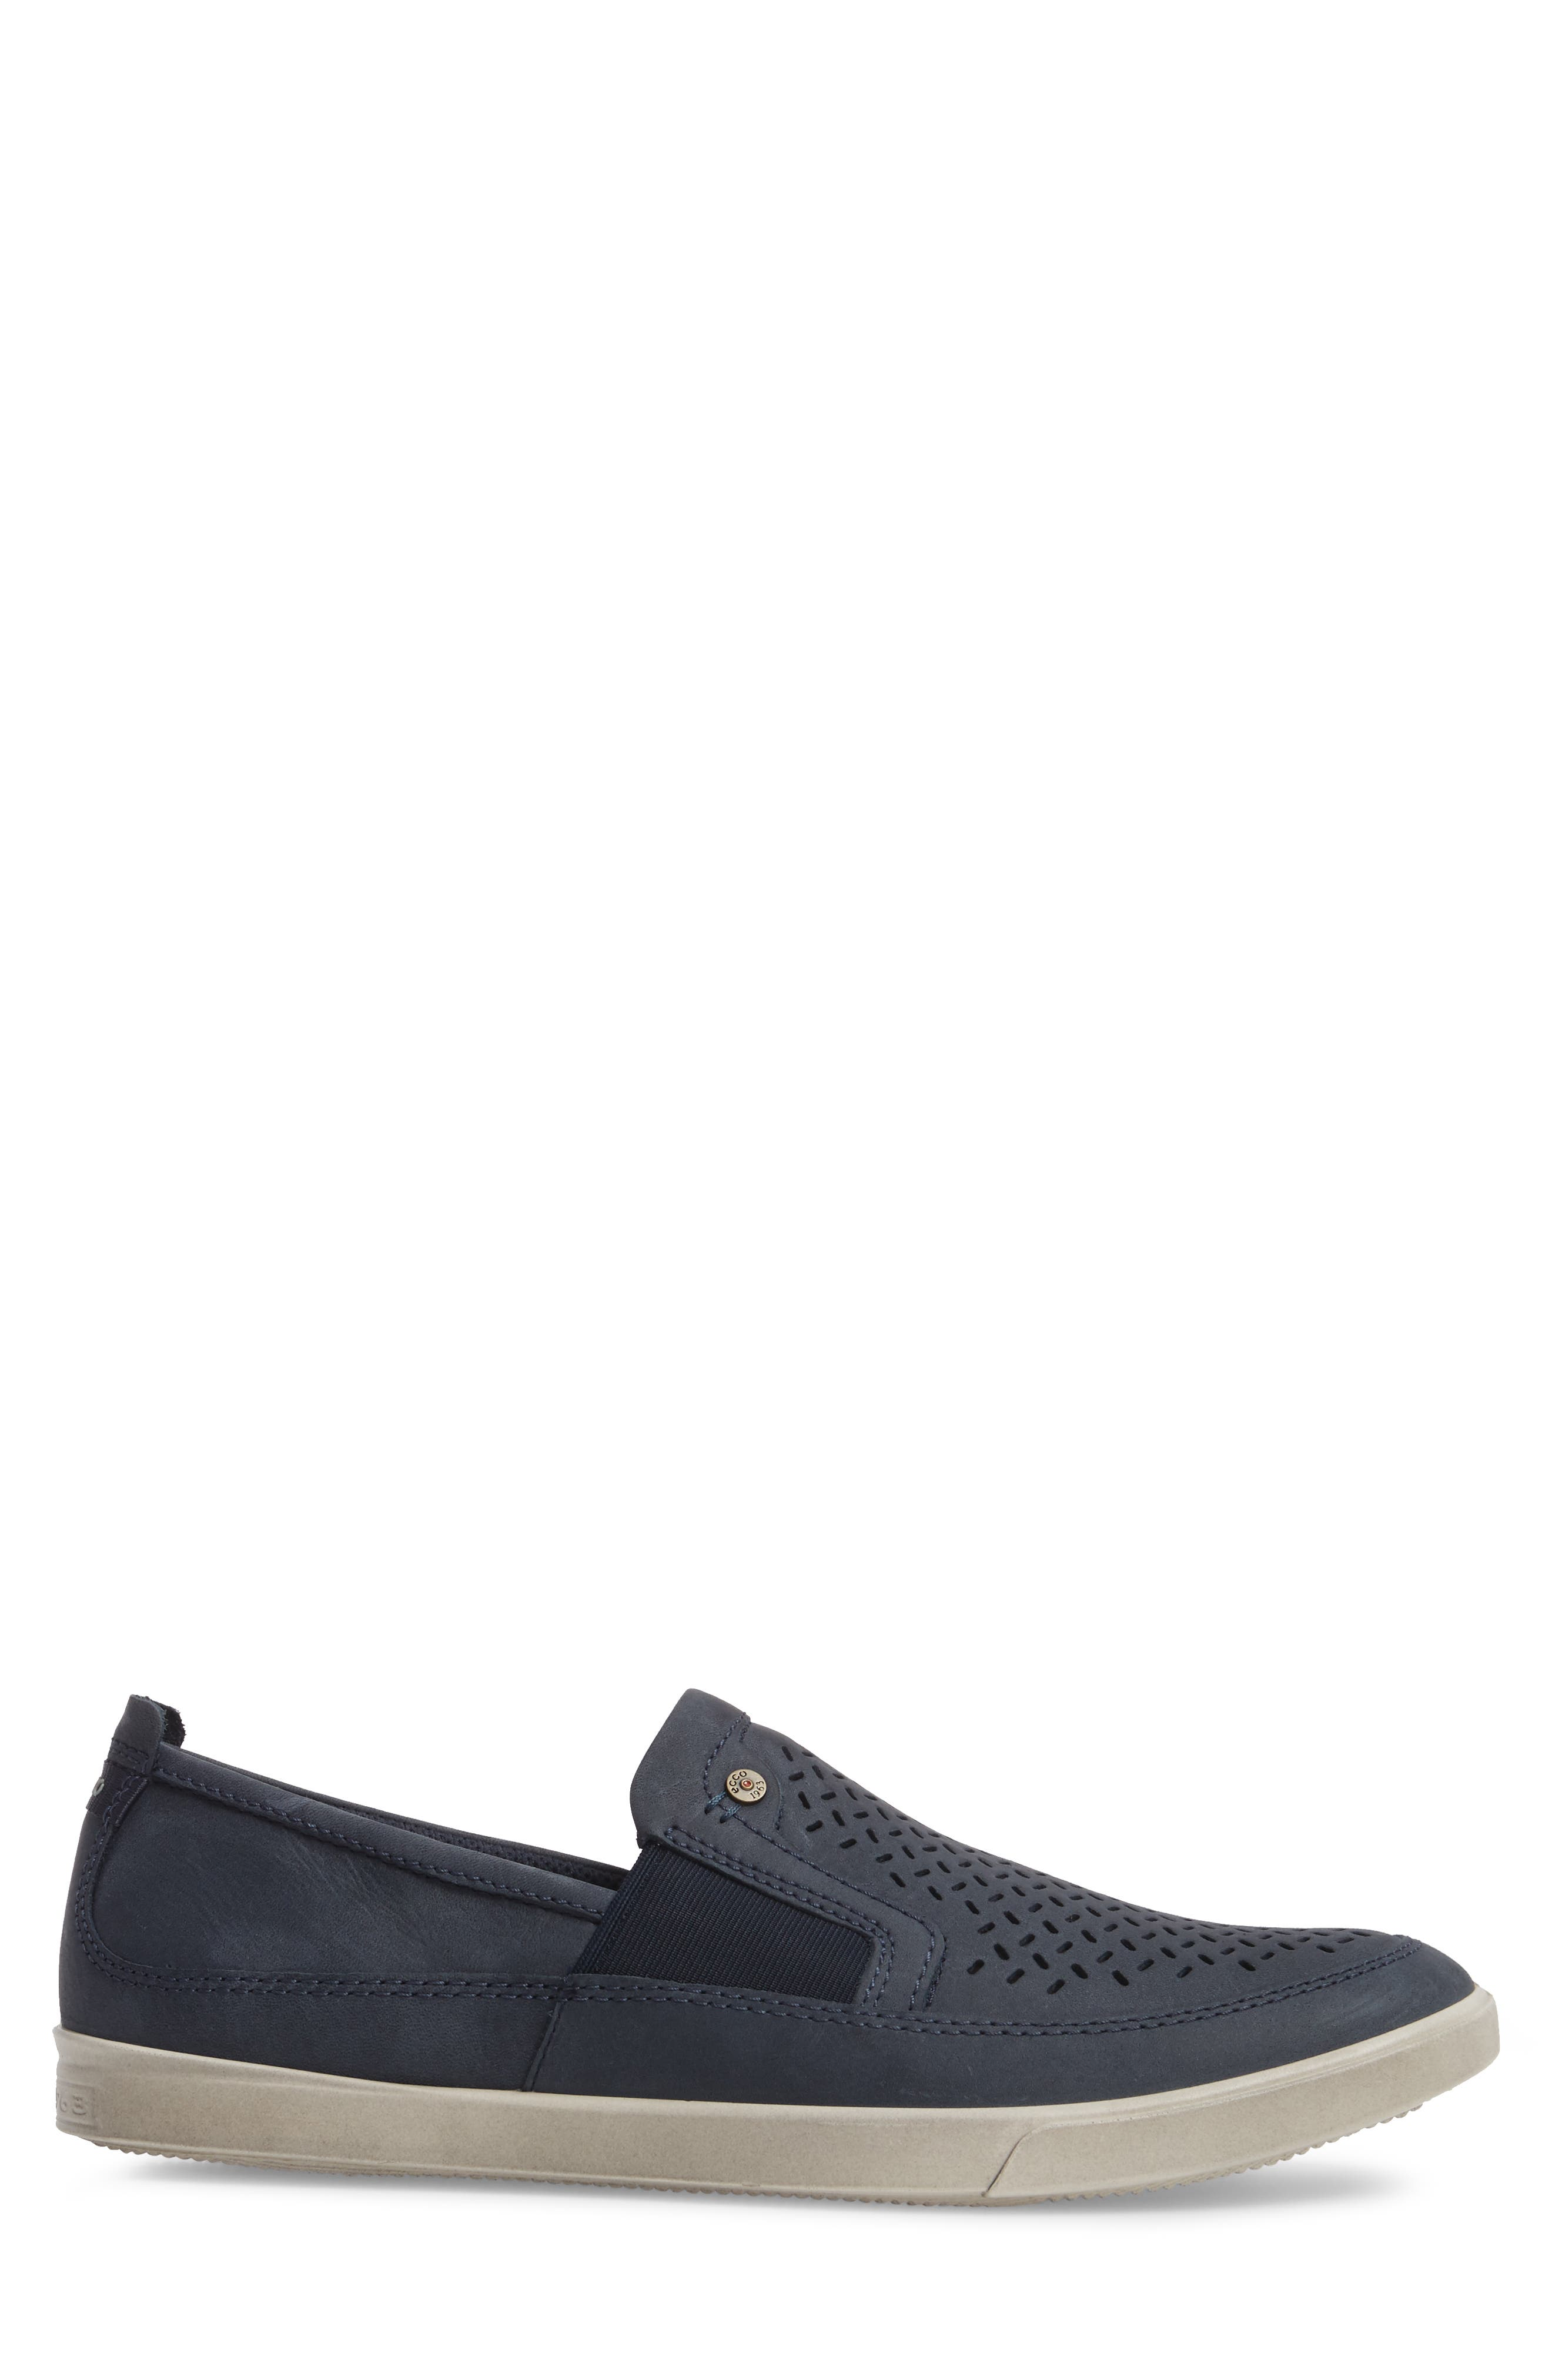 'Collin' Perforated Slip On Sneaker,                             Alternate thumbnail 3, color,                             MARINE LEATHER